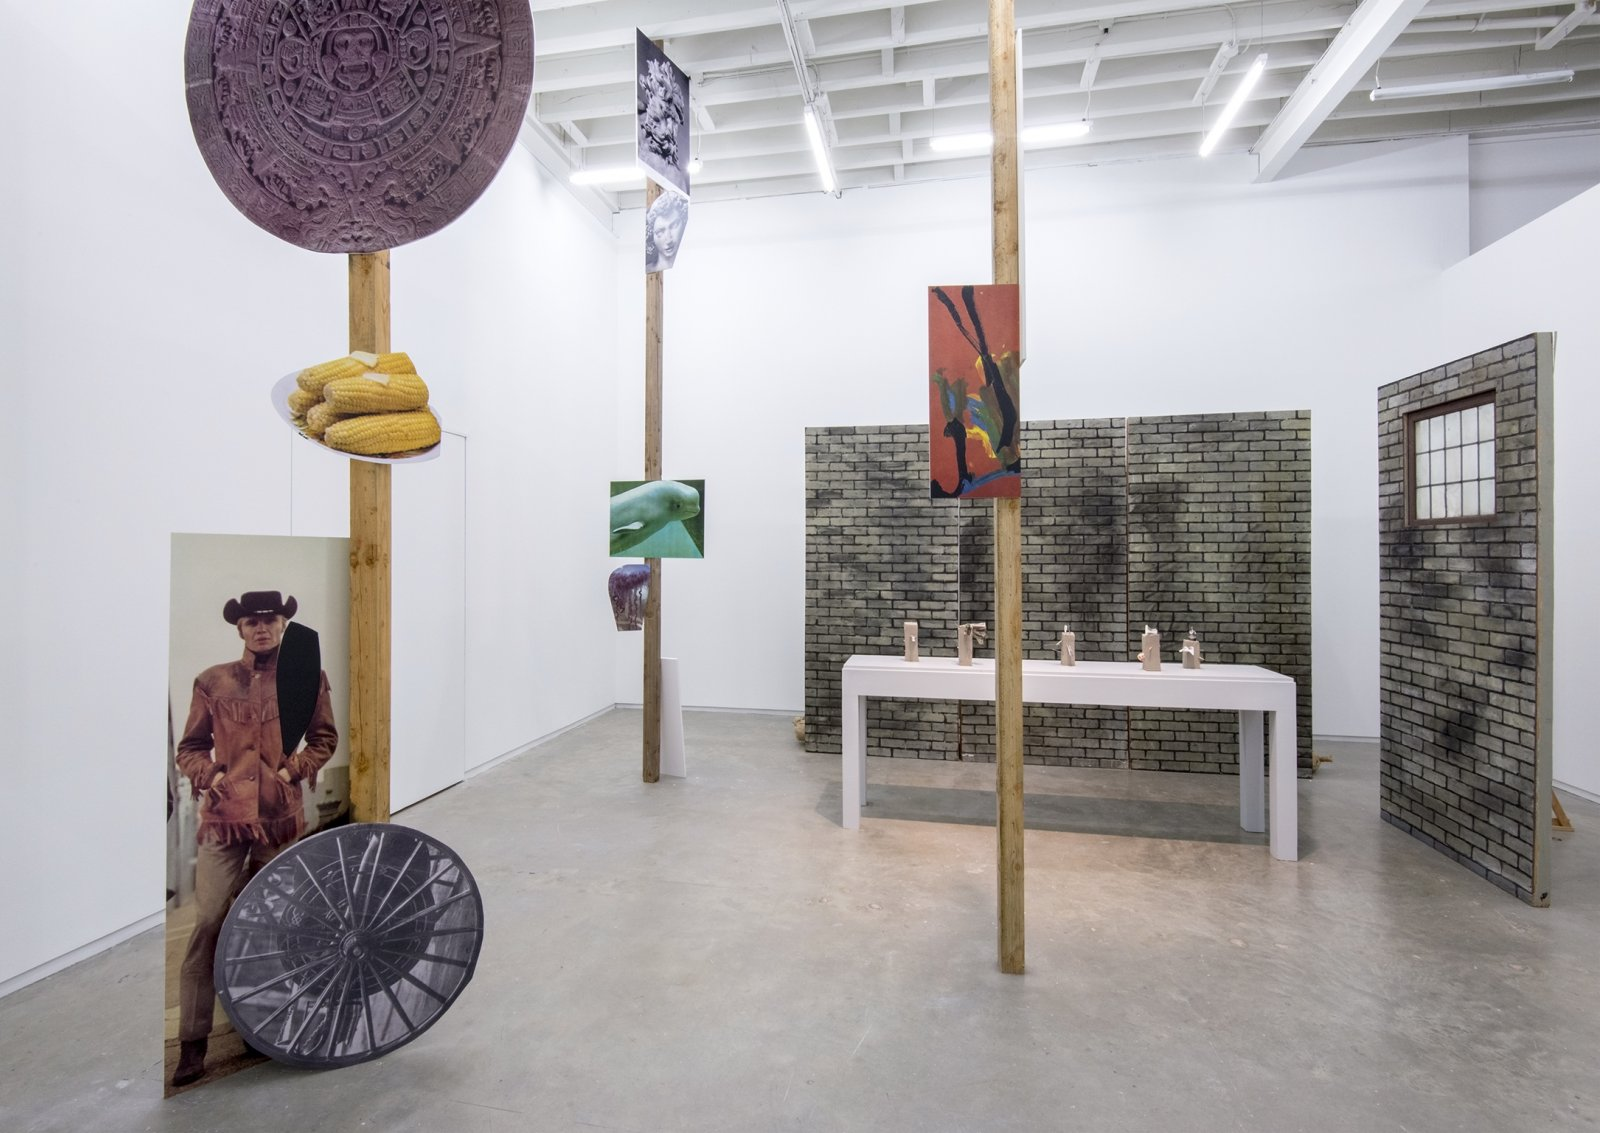 Geoffrey Farmer, installation view, The Grass and the Banana go for a walk, Catriona Jeffries, 2014​​ by Geoffrey Farmer